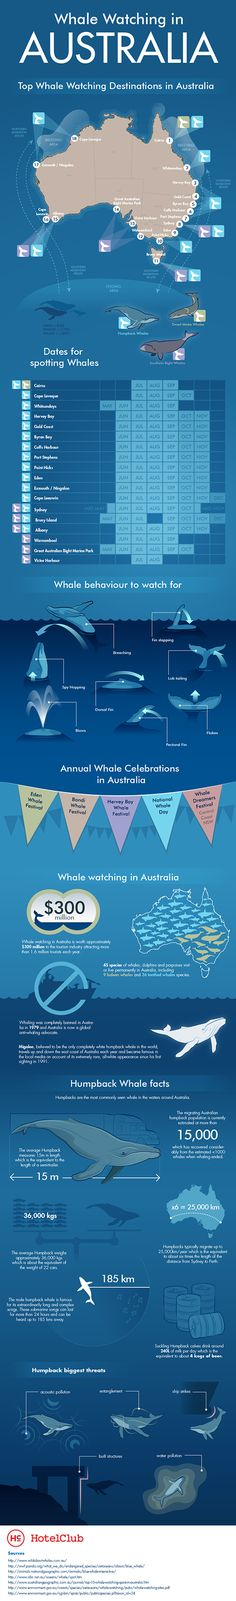 Planning on your next vacation trip? Want to go Whale Watching? Australia is considered to be one of the best places to see whales in the world. The most common sighted whales is - humpbacks. However, there is also the chance to ascertain other species, like blue whales, dwarf minke whales and southern right whales from several spots along Australia's outline. # We Educate Travellers for More Productive, Efficient and Safer Travel! intelligenttravel...